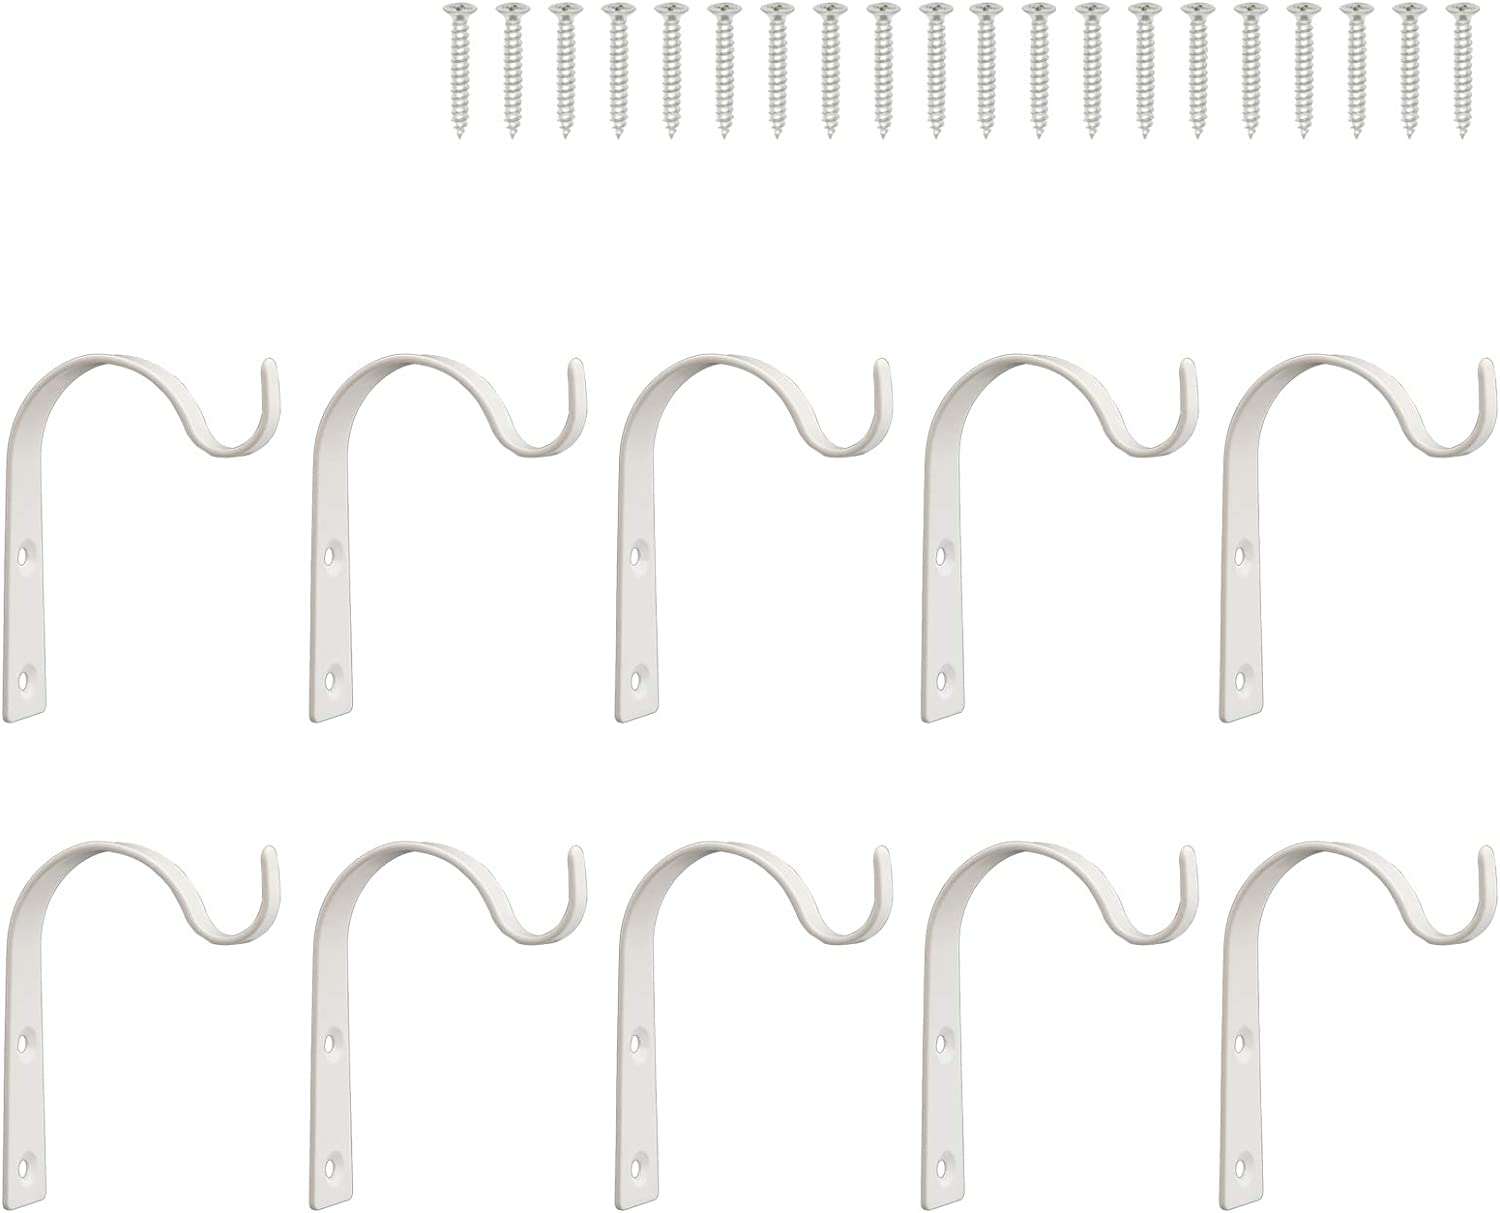 FEED GARDEN Iron Wall Hook for Hanging Plant Bracket, 3 Inch 10 Pack,Metal Hooks for Plant Hangers, Lanterns, Coats, Mason Jar, Indoor & Outdoor Rustic Home Decoration,White